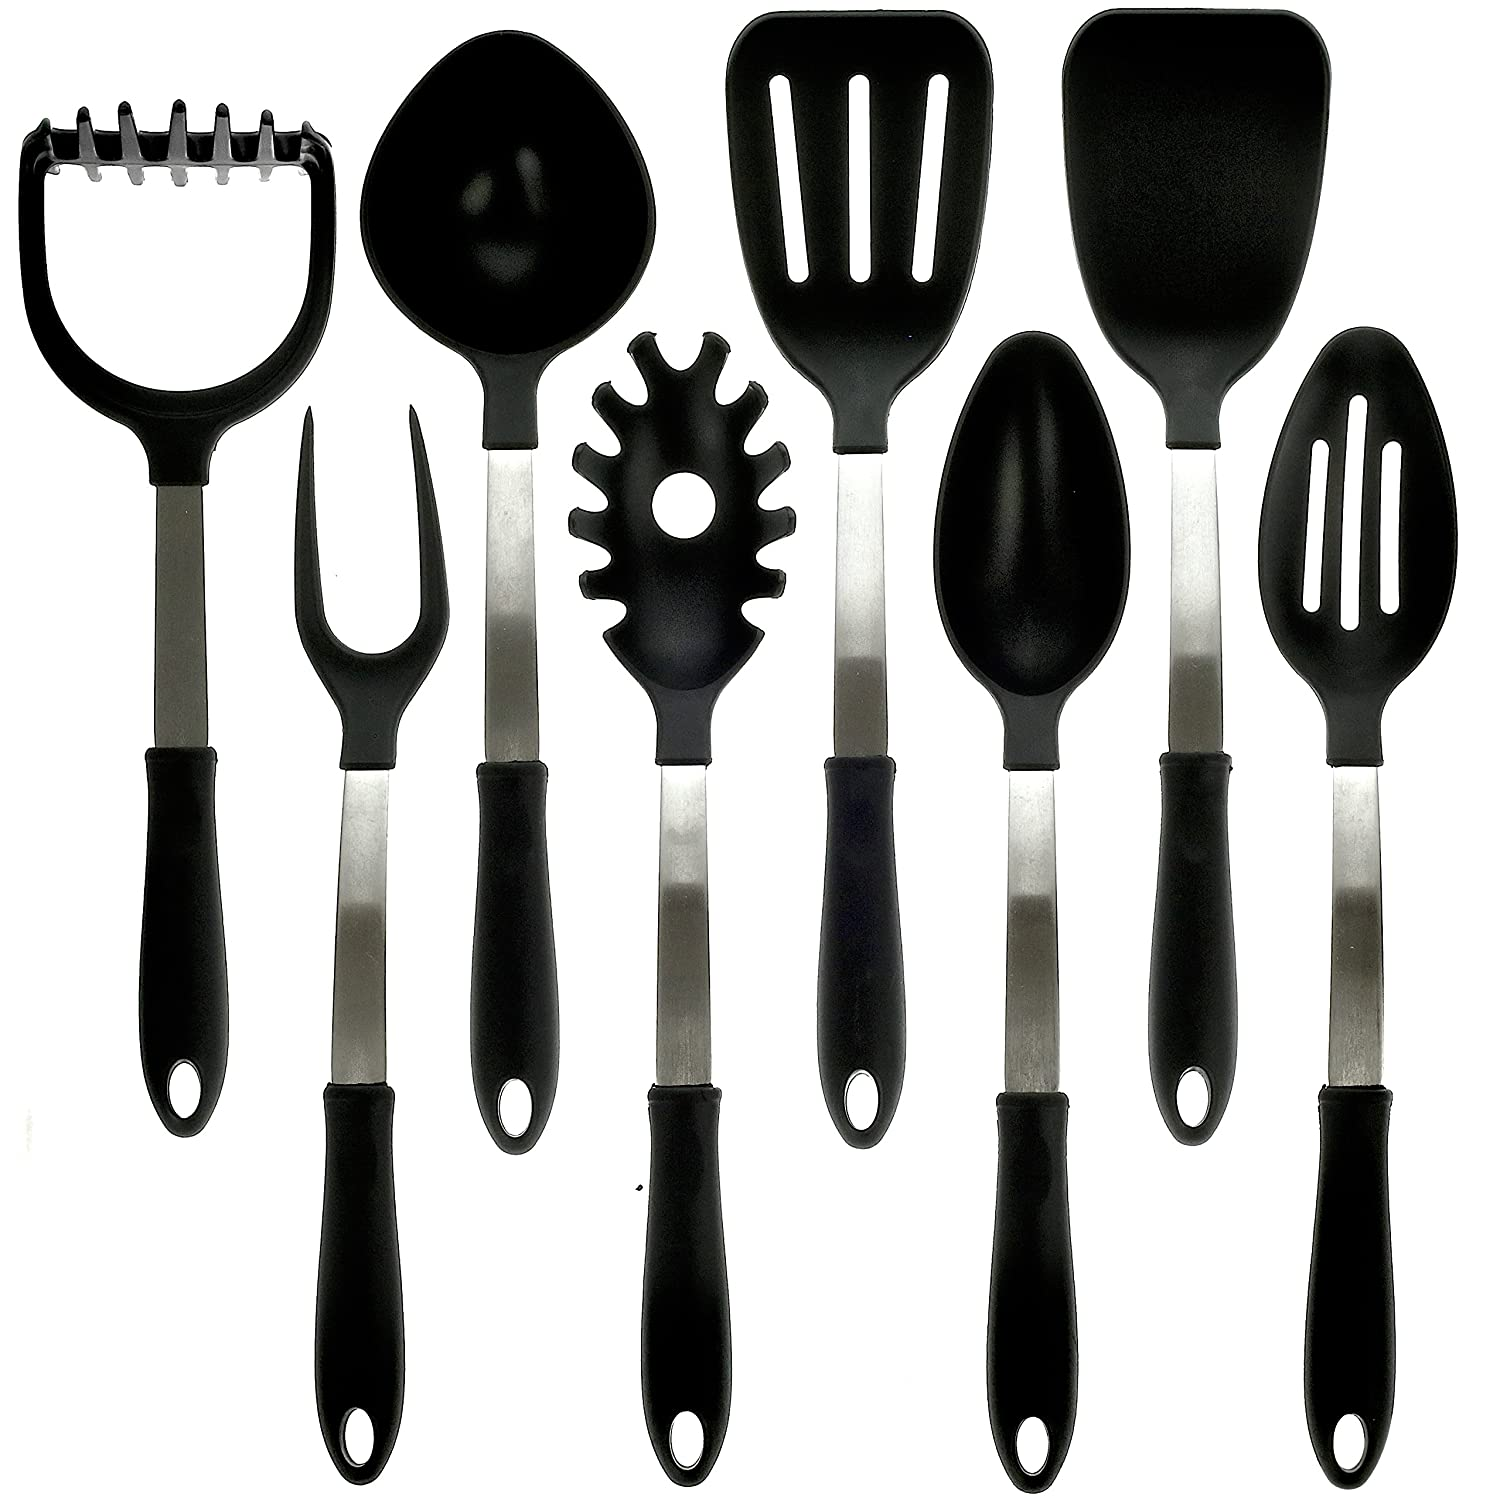 kitchzen 8 piece stainless steel cooking utensils set